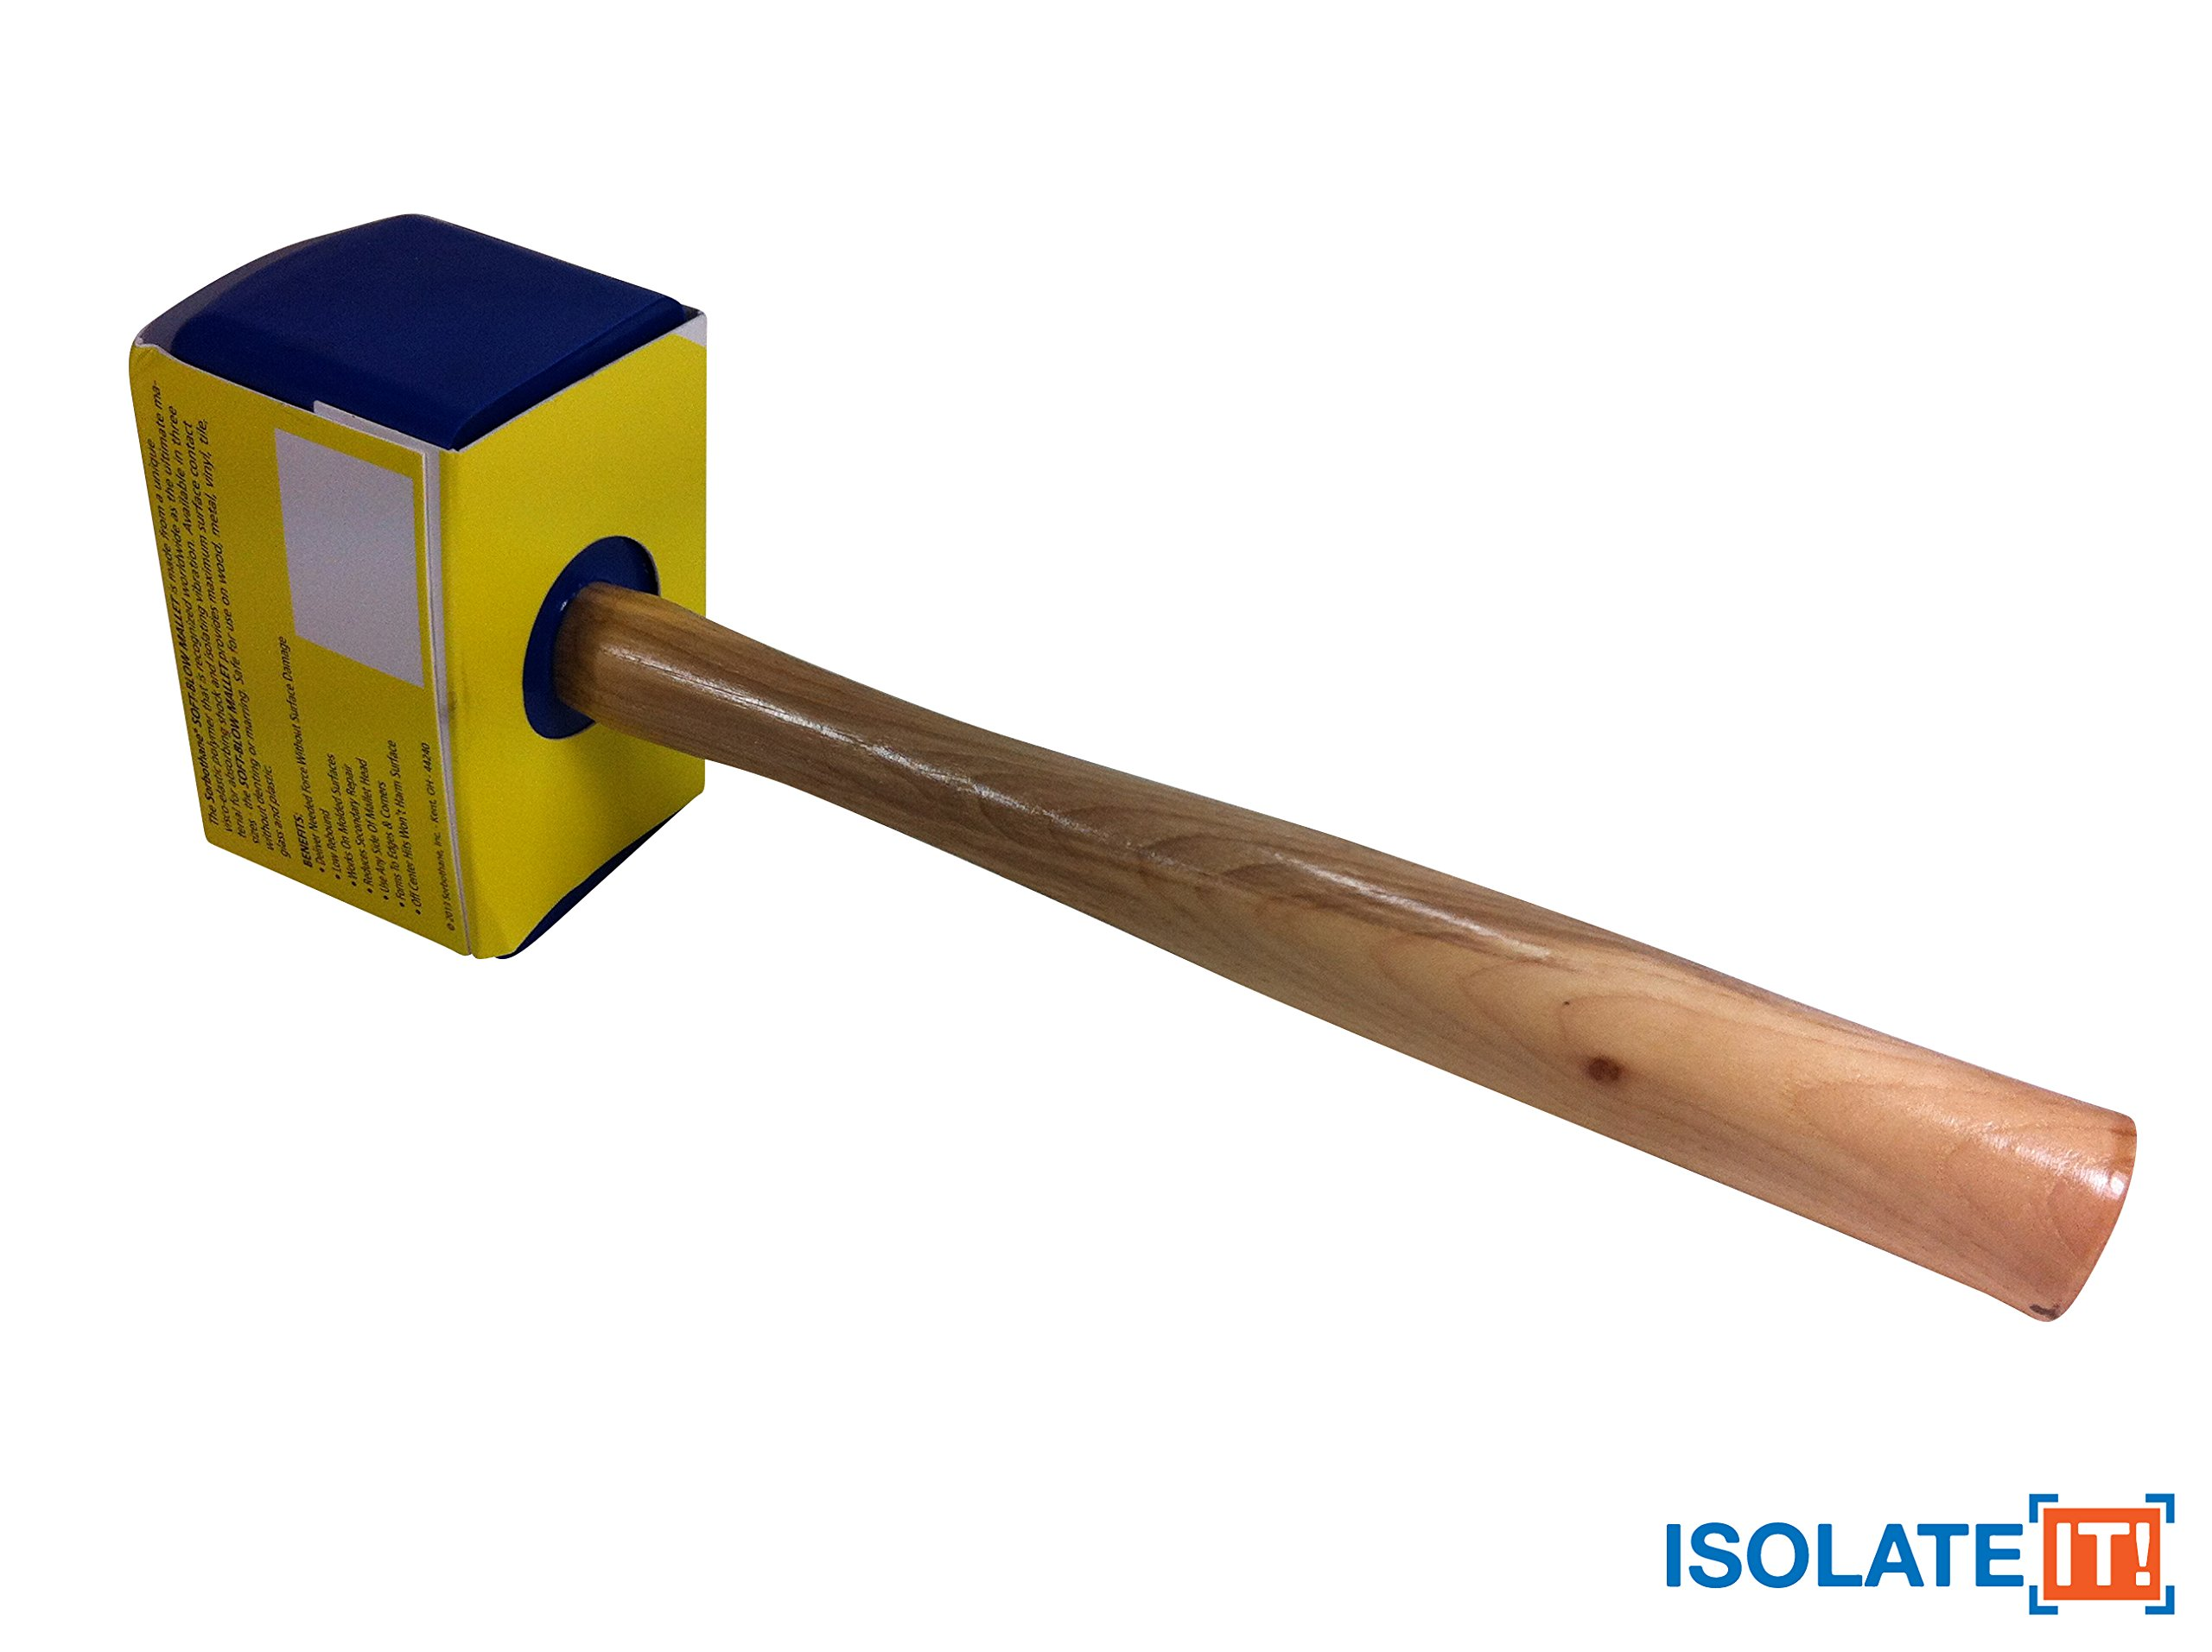 Isolate It!: Sorbothane Soft-blow Mallet for Automotive, Cabinetry, Carpentry and Glass Work - Large 20oz by Isolate It! (Image #1)